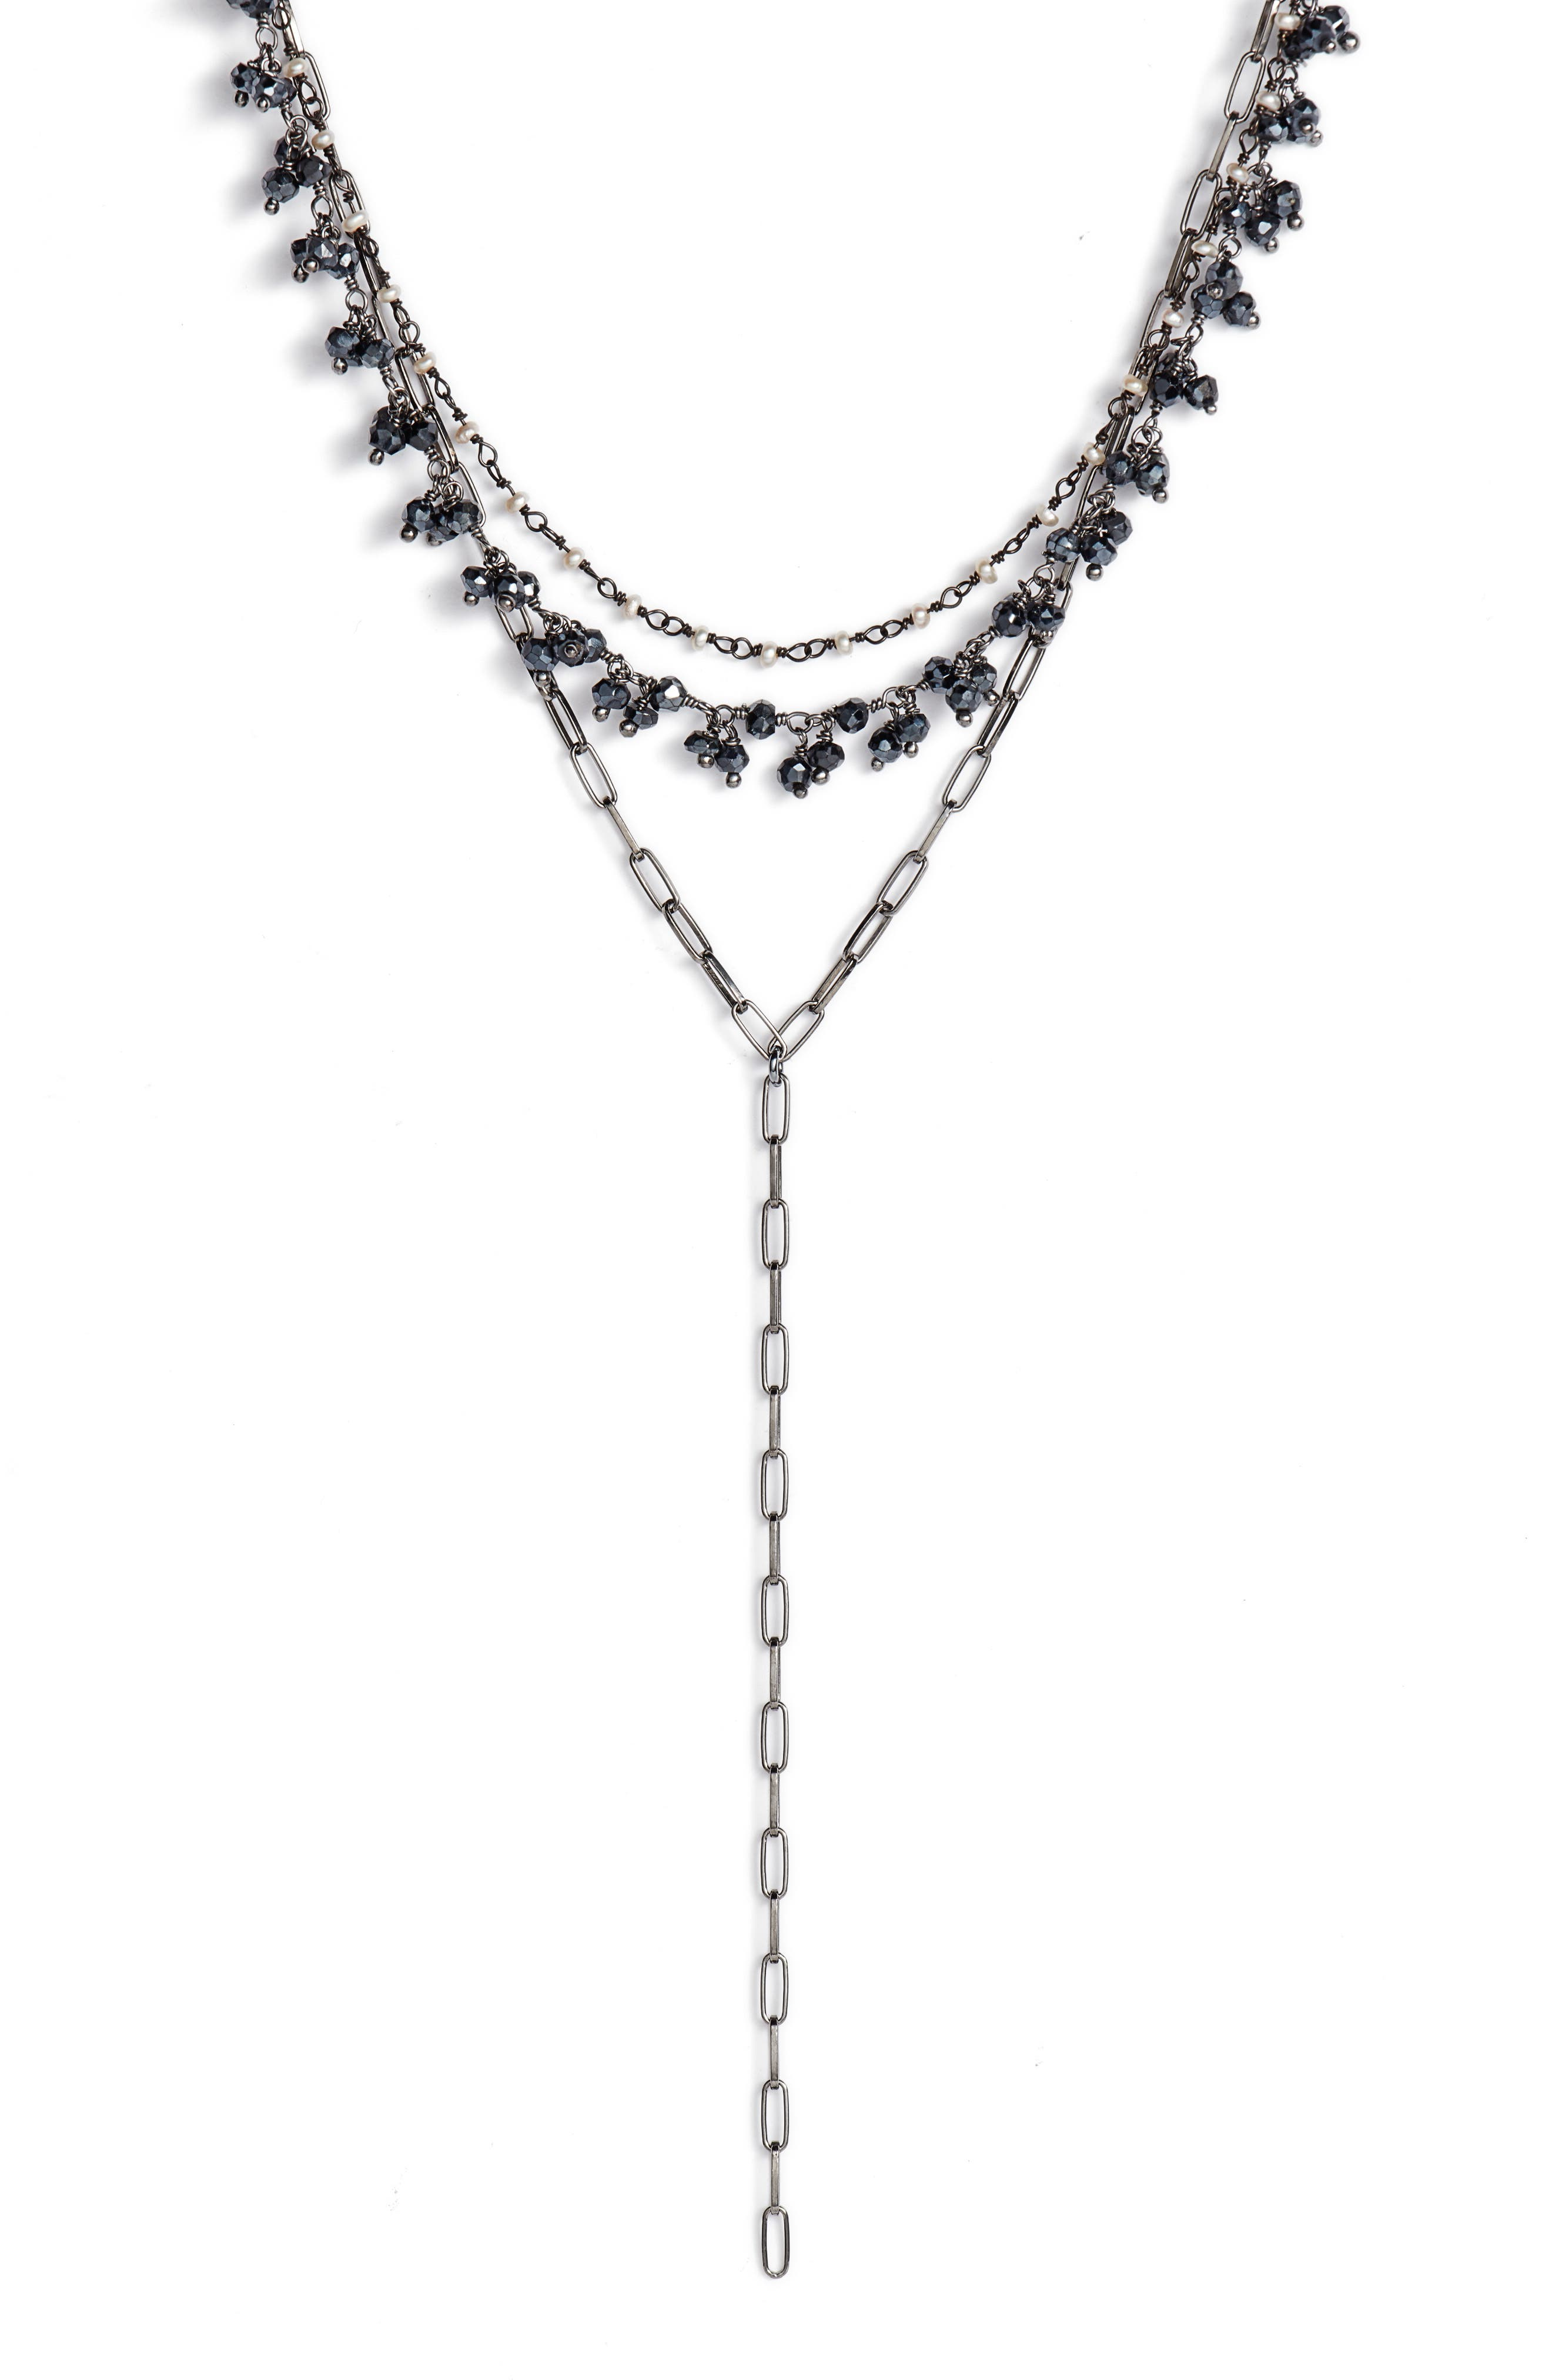 Layered Lariat Necklace,                             Main thumbnail 1, color,                             MYSTIC BLACK SPINEL SHAKER/ RH